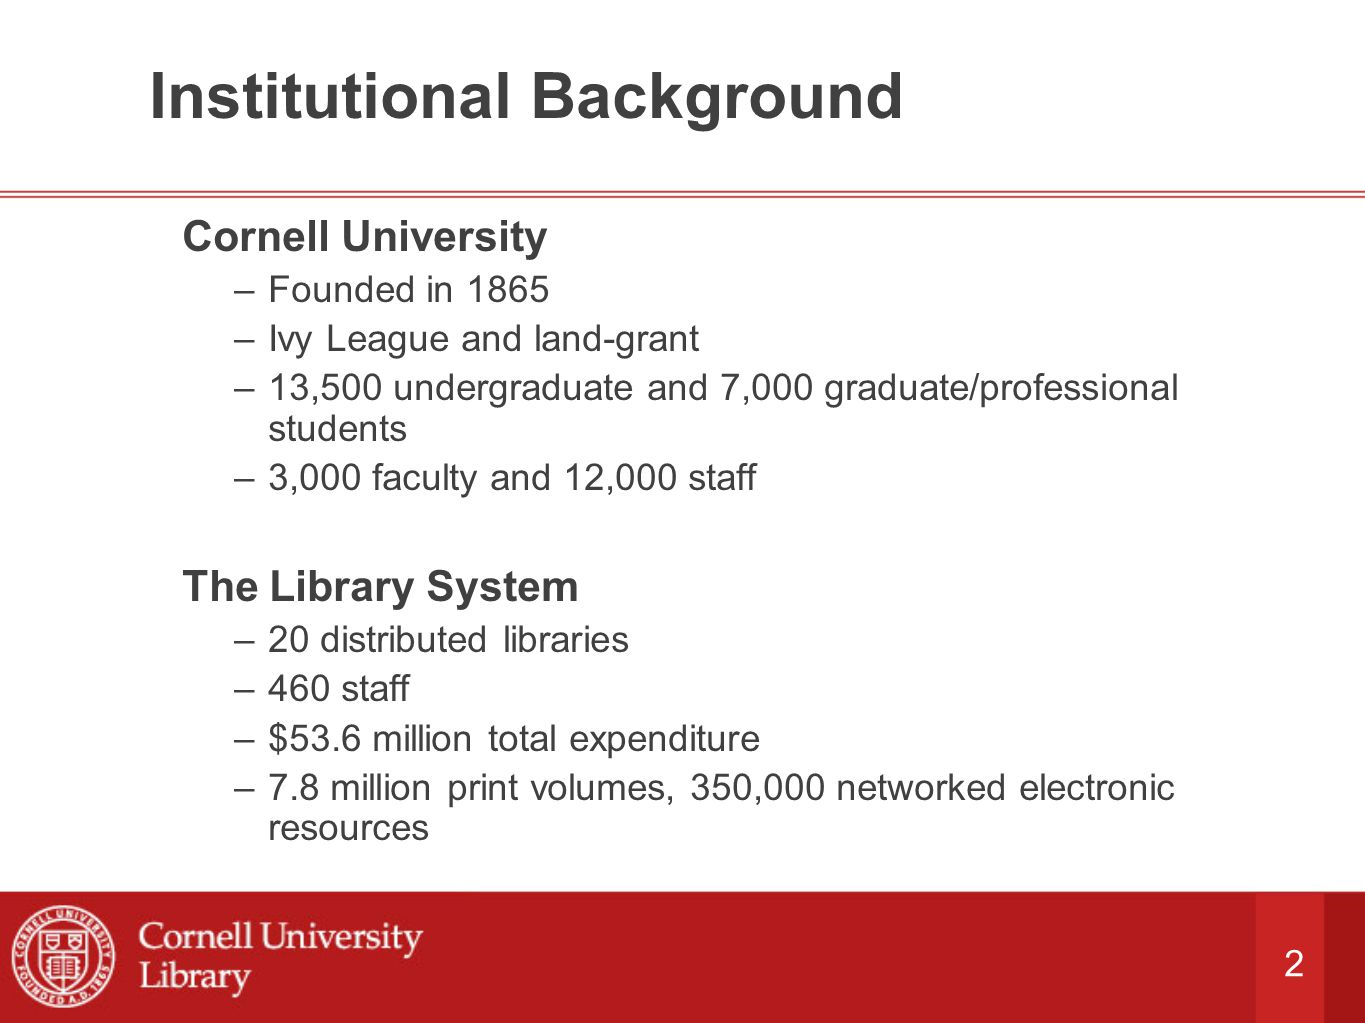 2 Institutional Background Cornell University –Founded in 1865 –Ivy League and land-grant –13,500 undergraduate and 7,000 graduate/professional students –3,000 faculty and 12,000 staff The Library System –20 distributed libraries –460 staff –$53.6 million total expenditure –7.8 million print volumes, 350,000 networked electronic resources